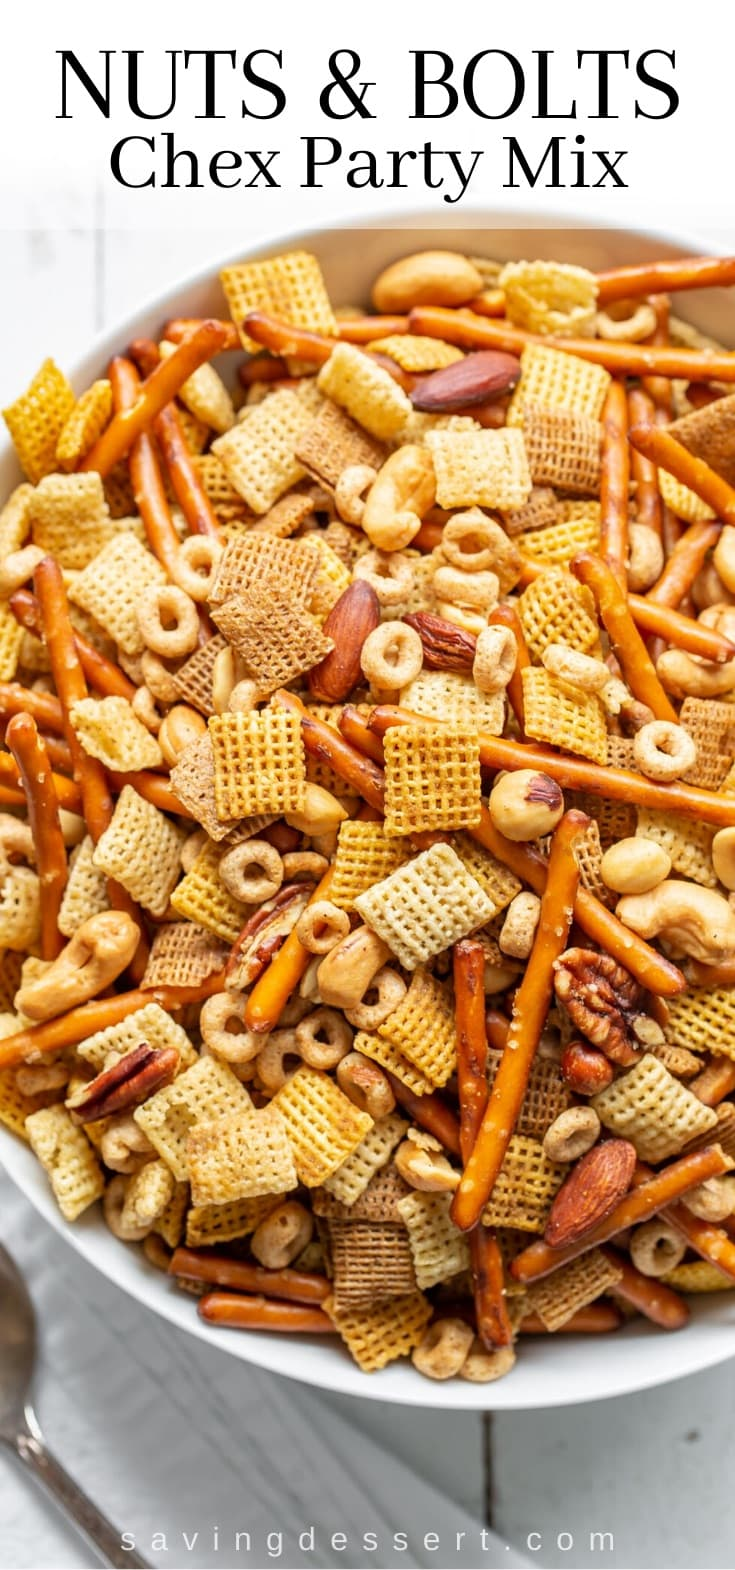 A big bowl of chex party mix with pretzels, cereal and nuts